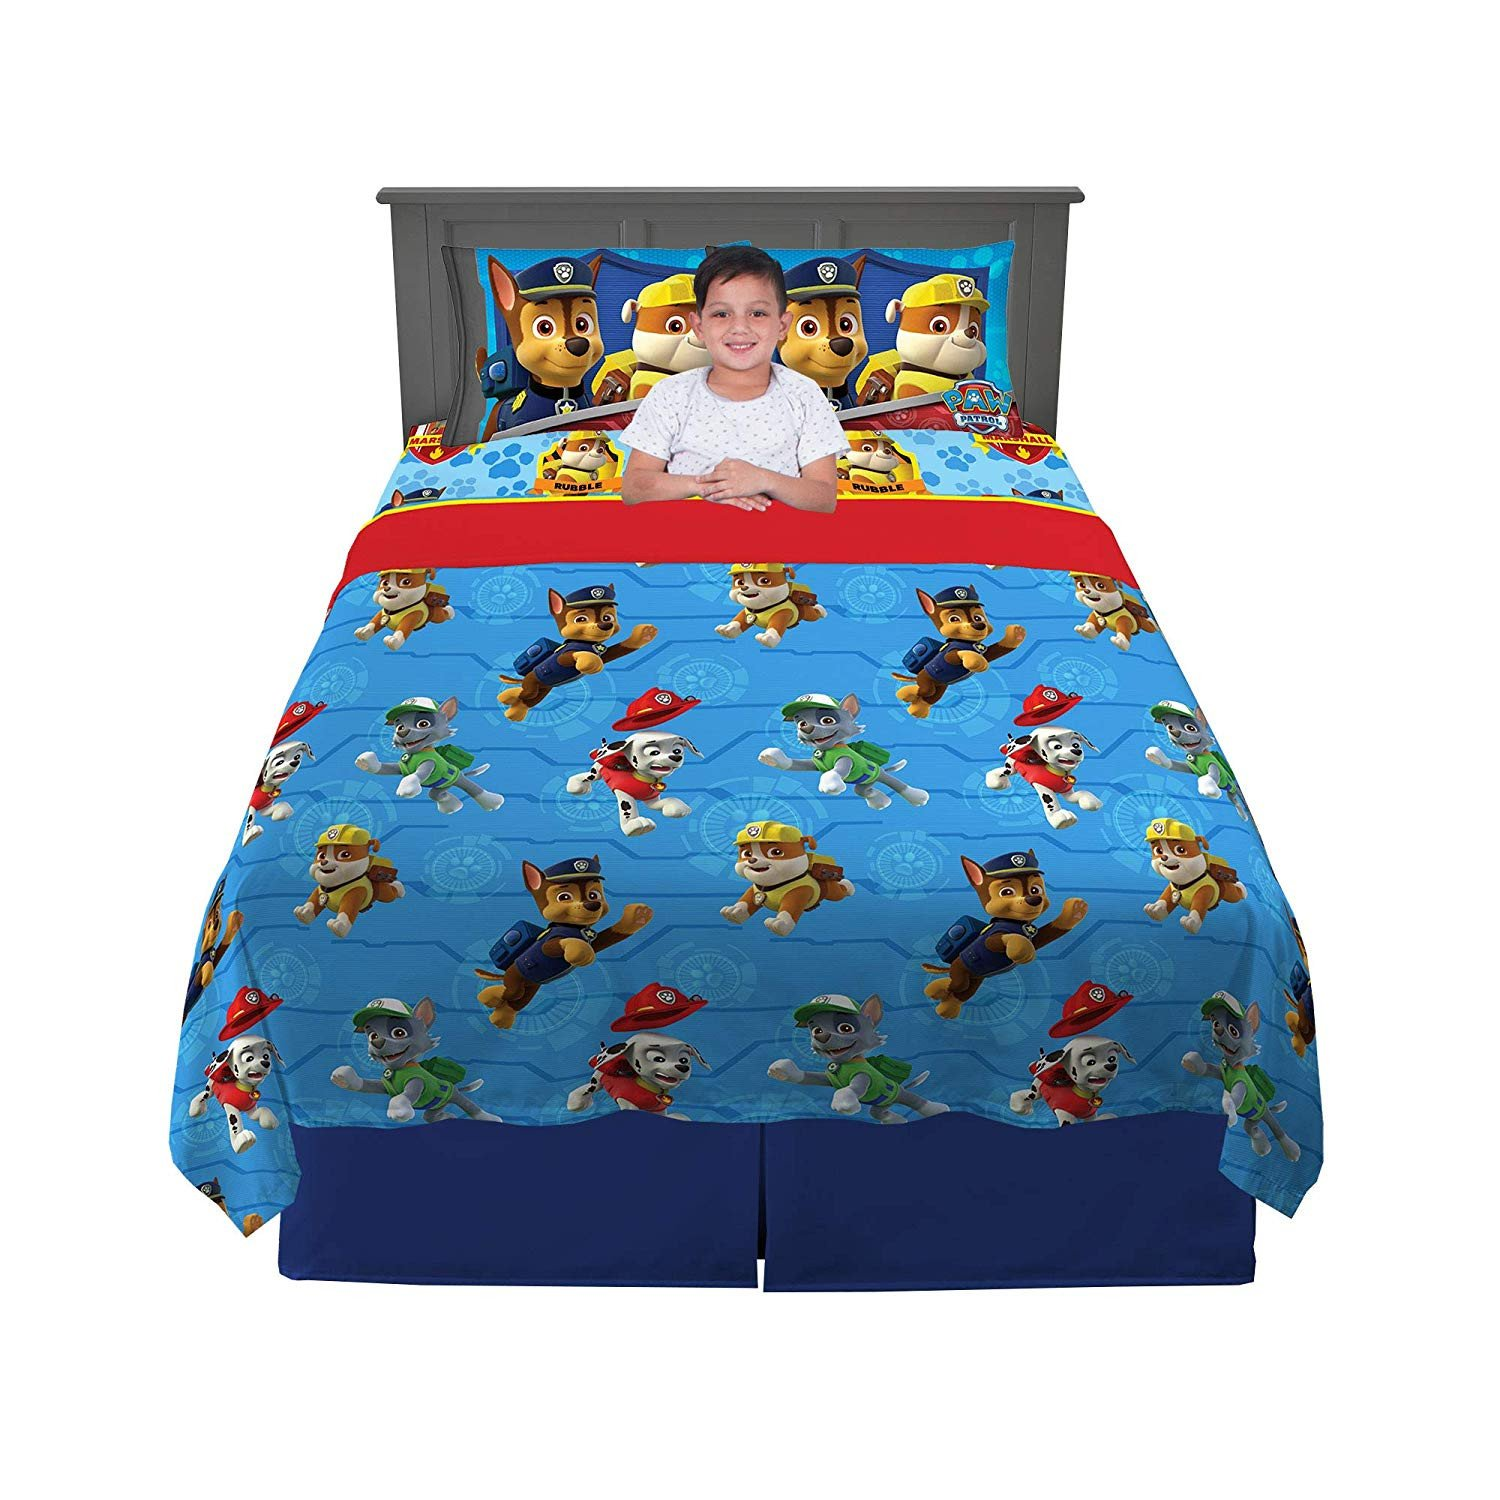 Paw Patrol Bedroom Set Awesome Paw Patrol Ruff Ruff Rescue Sheet Set Full Amazon Home